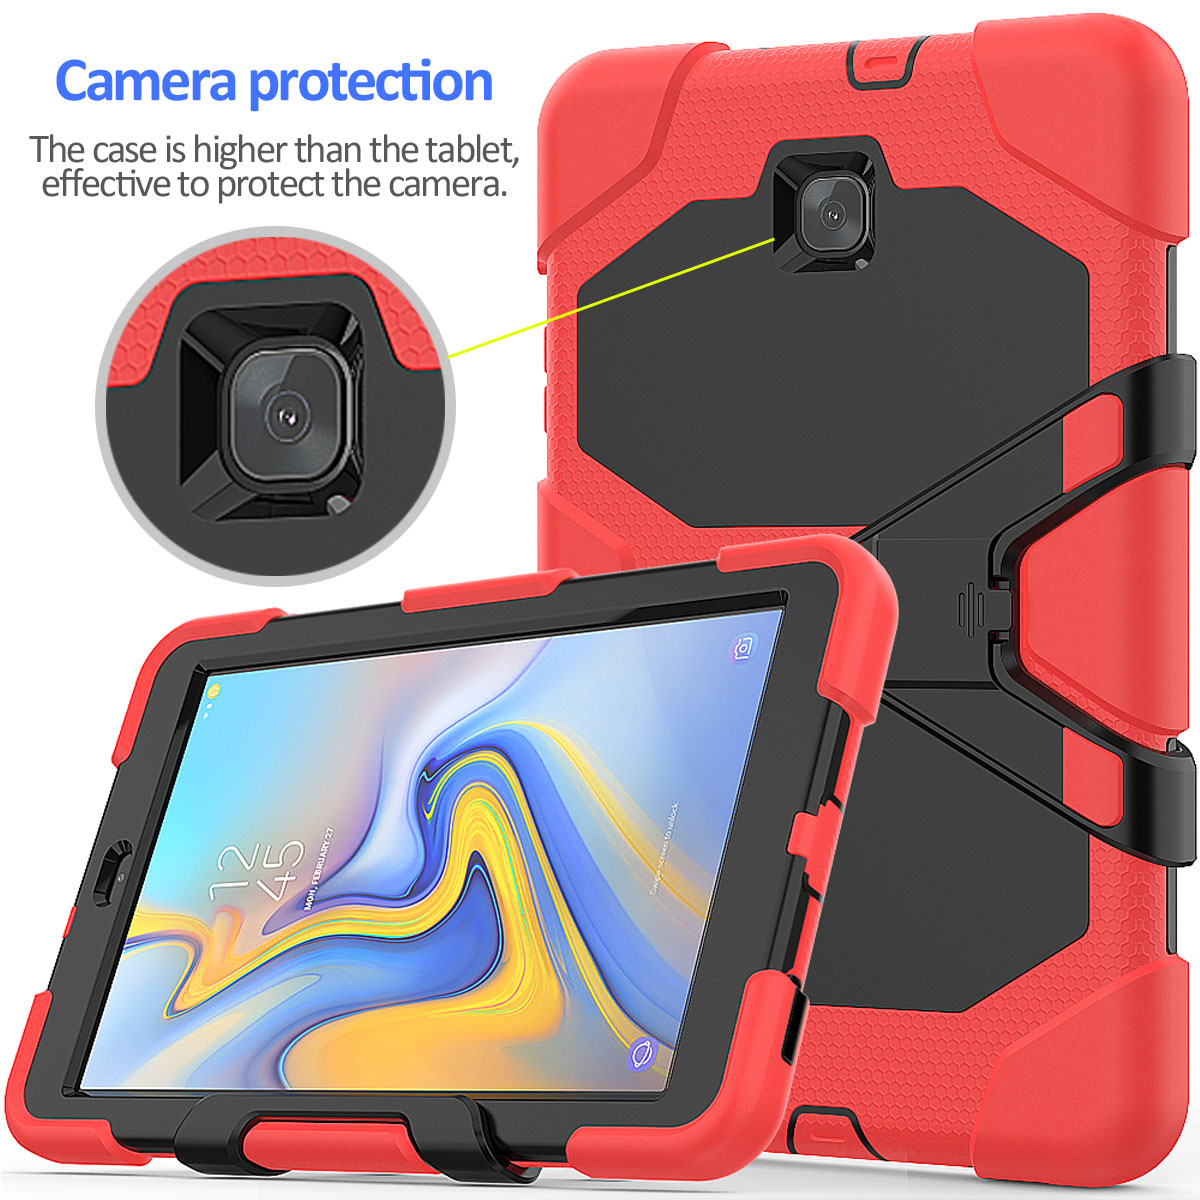 Rugged-Hard-Case-For-Samsung-Galaxy-Tab-A-8-0-2018-SM-T387-with-Screen-Protector thumbnail 65